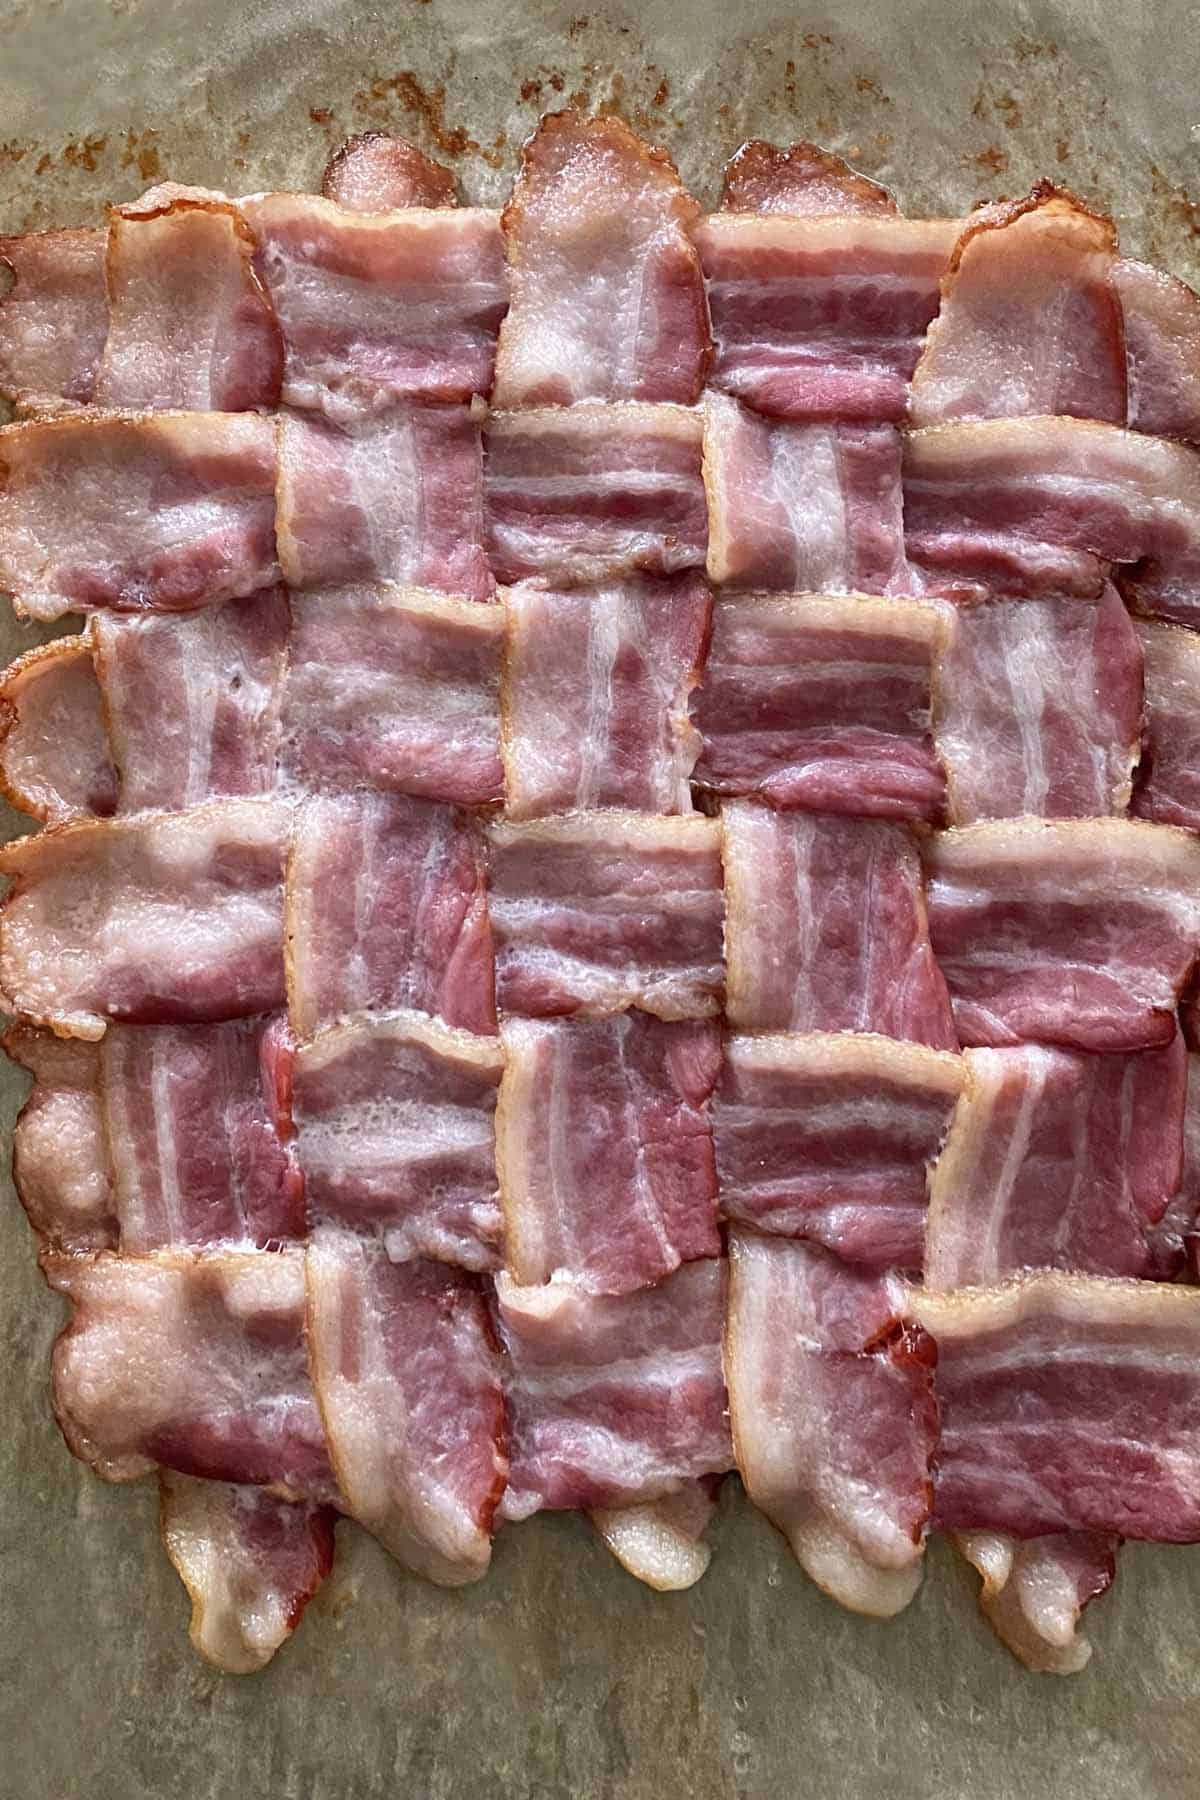 A close up of a partially cooked bacon weave on a piece of parchment paper